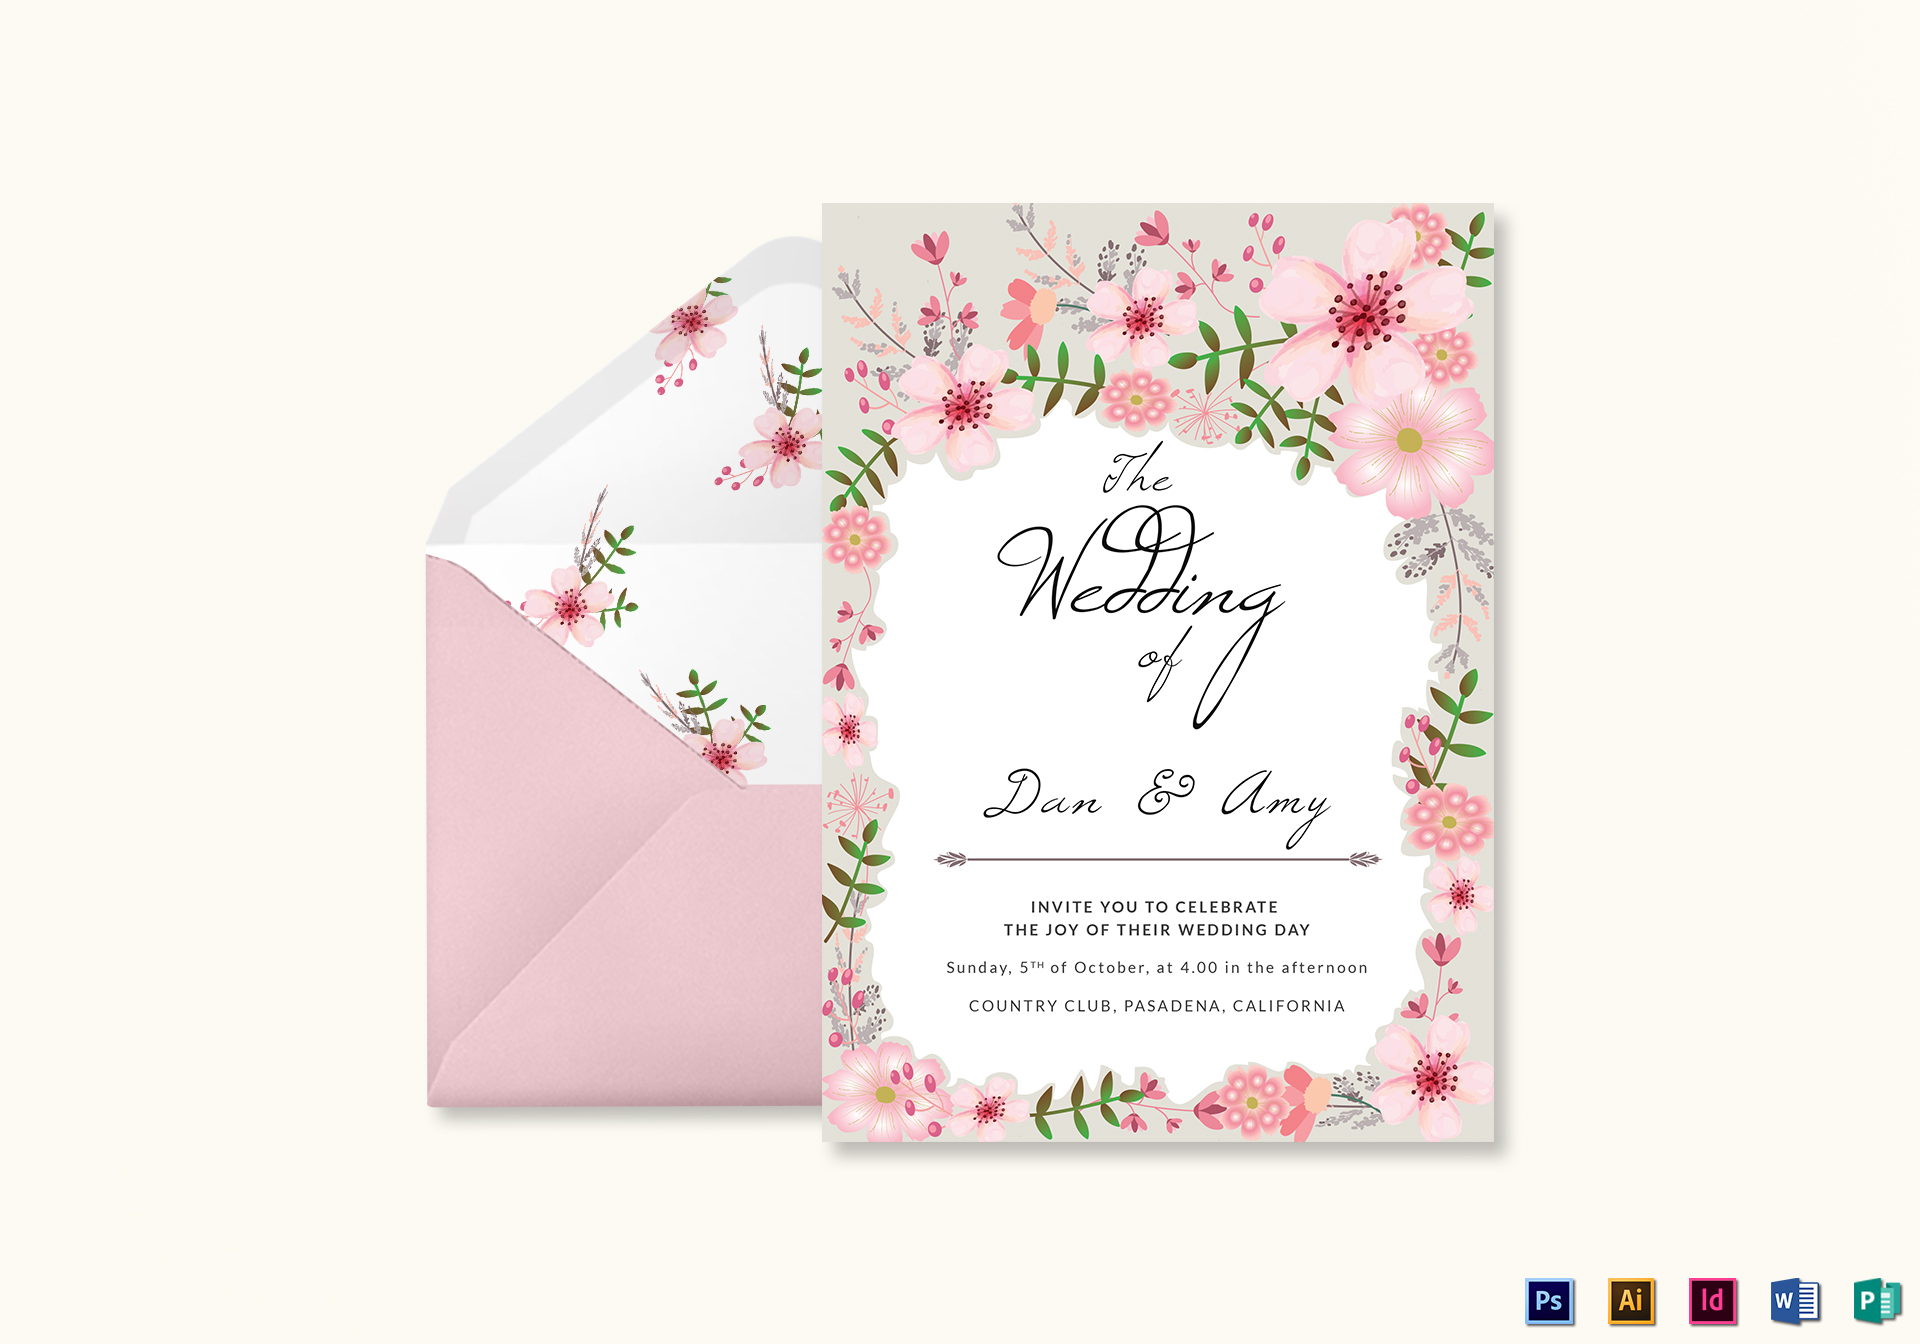 Wedding Invitation Design: Pink Floral Wedding Invitation Card Design Template In PSD